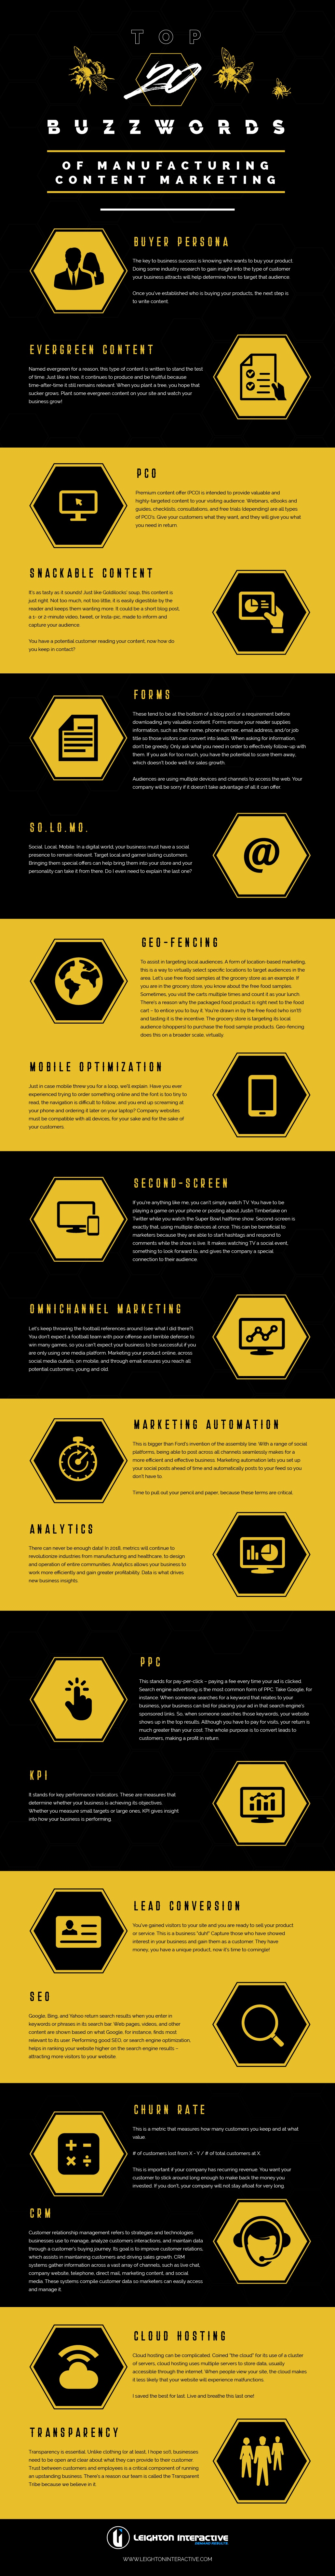 Top 20 Buzzwords of Manufacturing Content Marketing (Infographic)